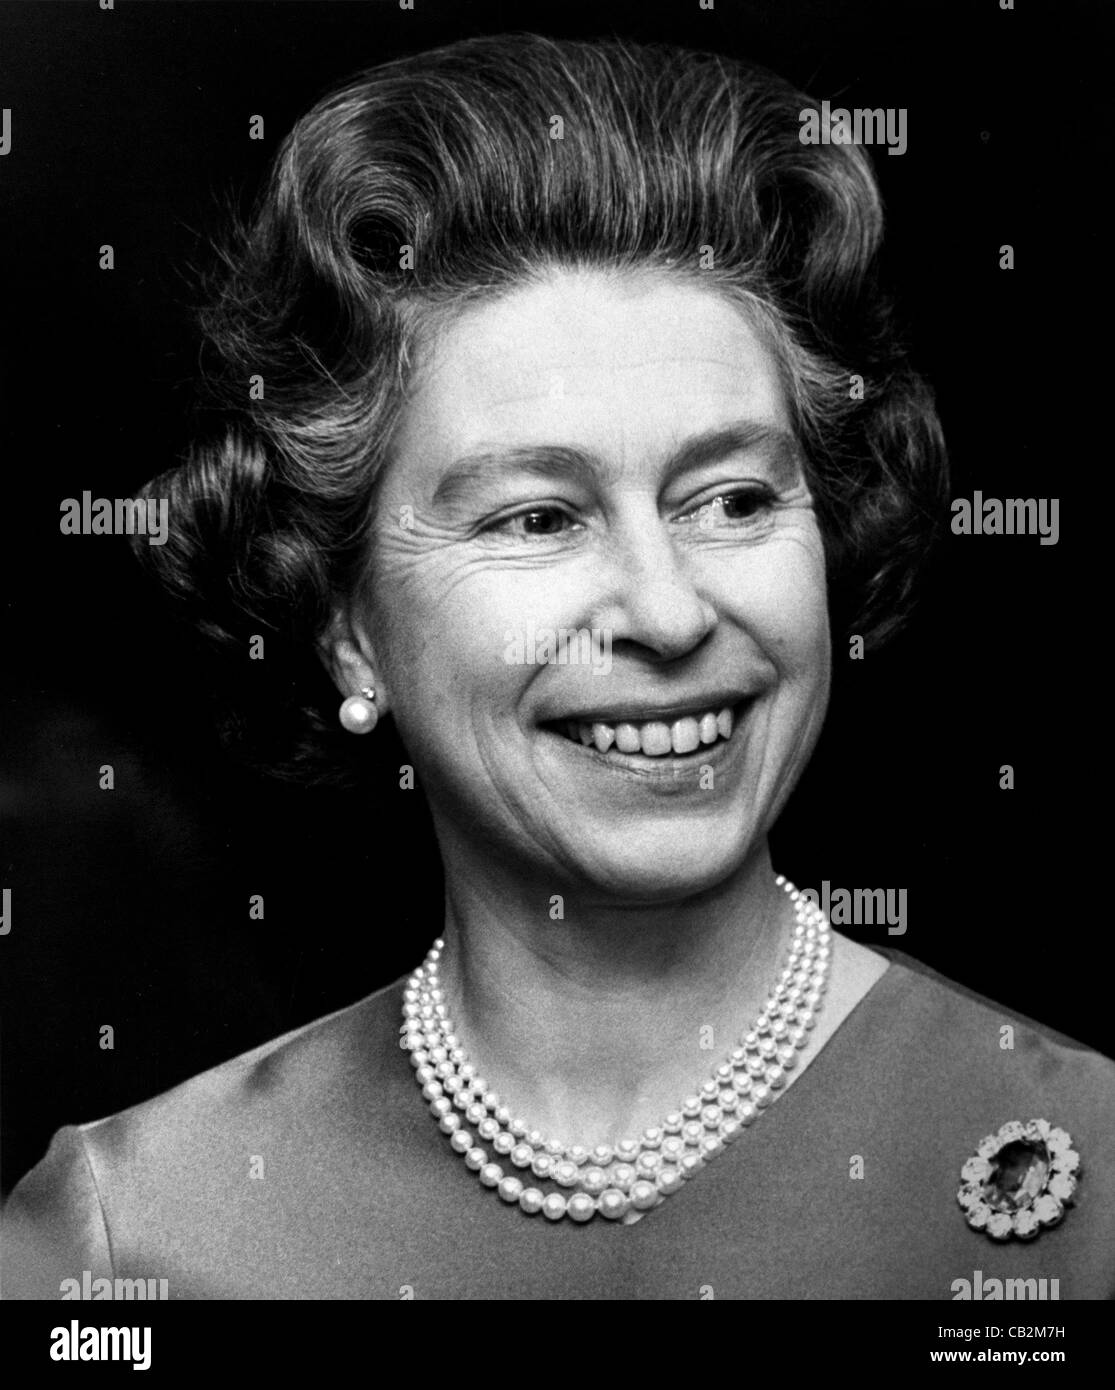 HM Queen Elizabeth II at a semi-formal function in 1975 Copyright owned photograph by Brian Harris. - Stock Image